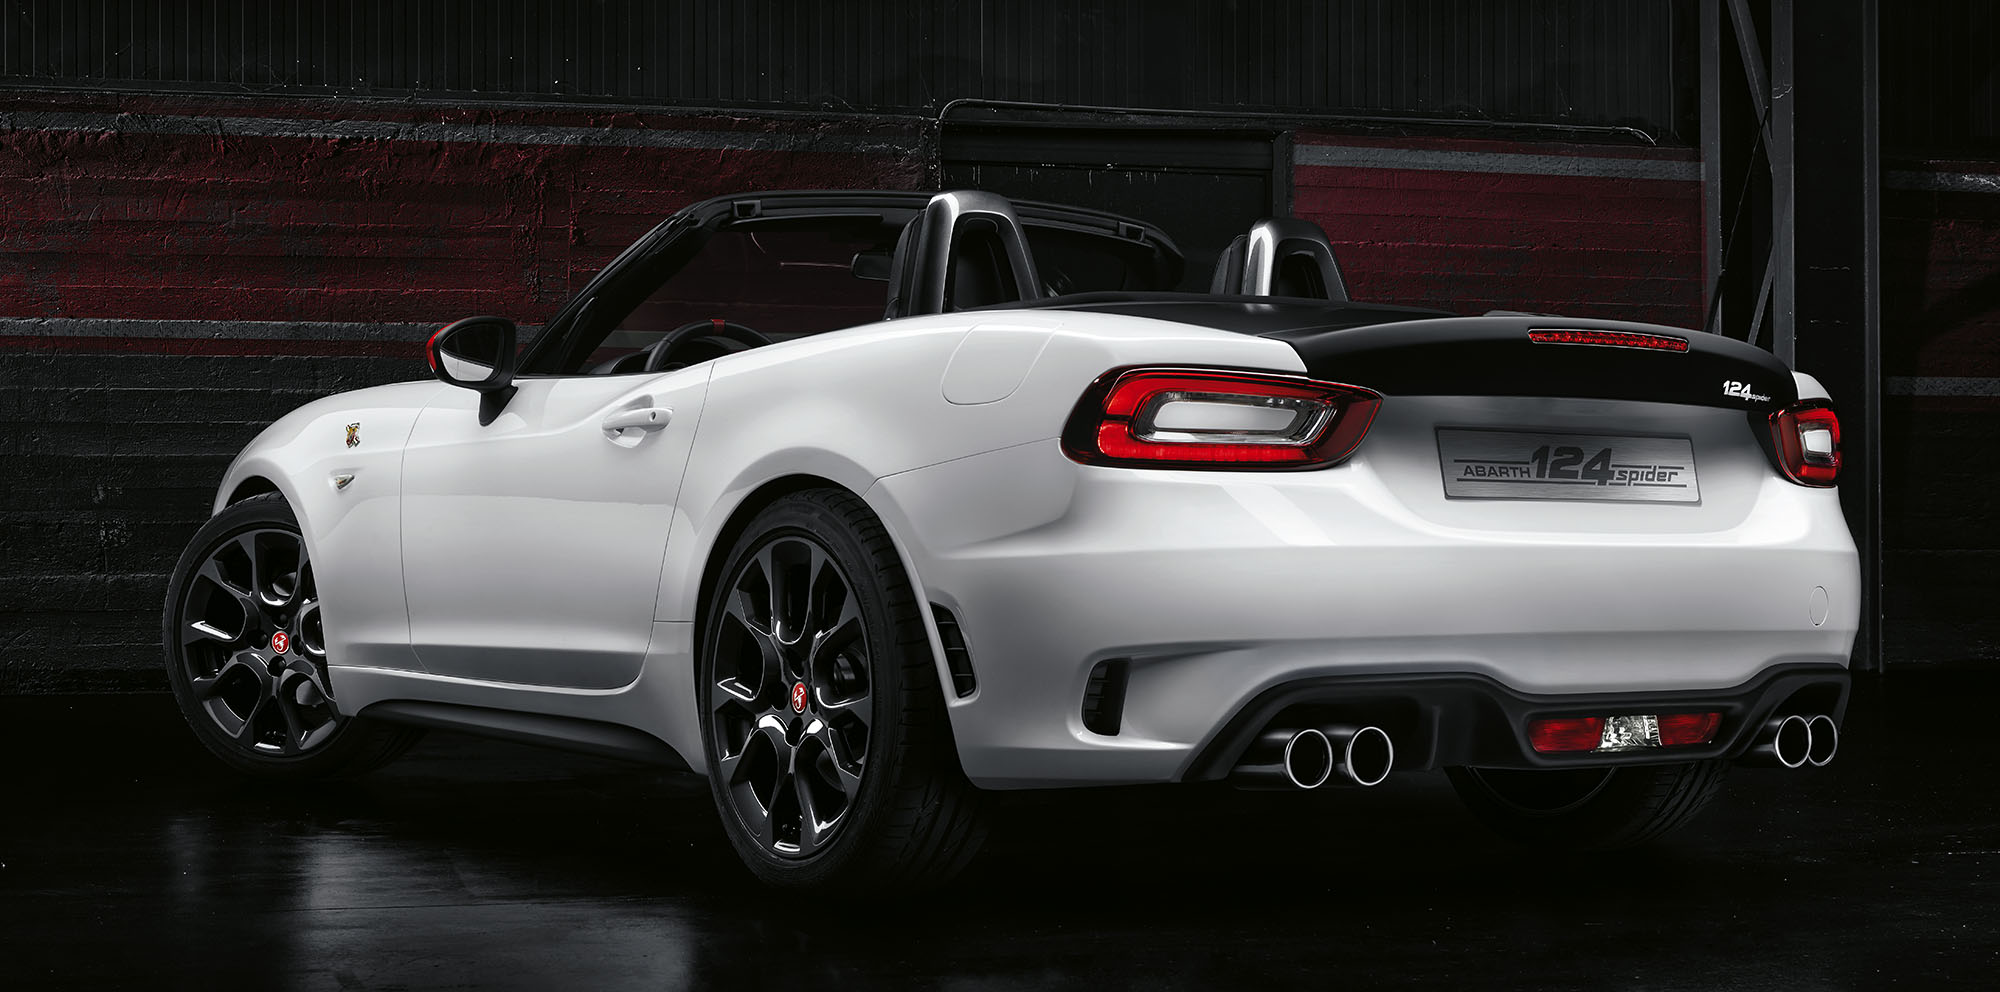 abarth 124 spider and 124 rally unveiled photos 1 of 6. Black Bedroom Furniture Sets. Home Design Ideas